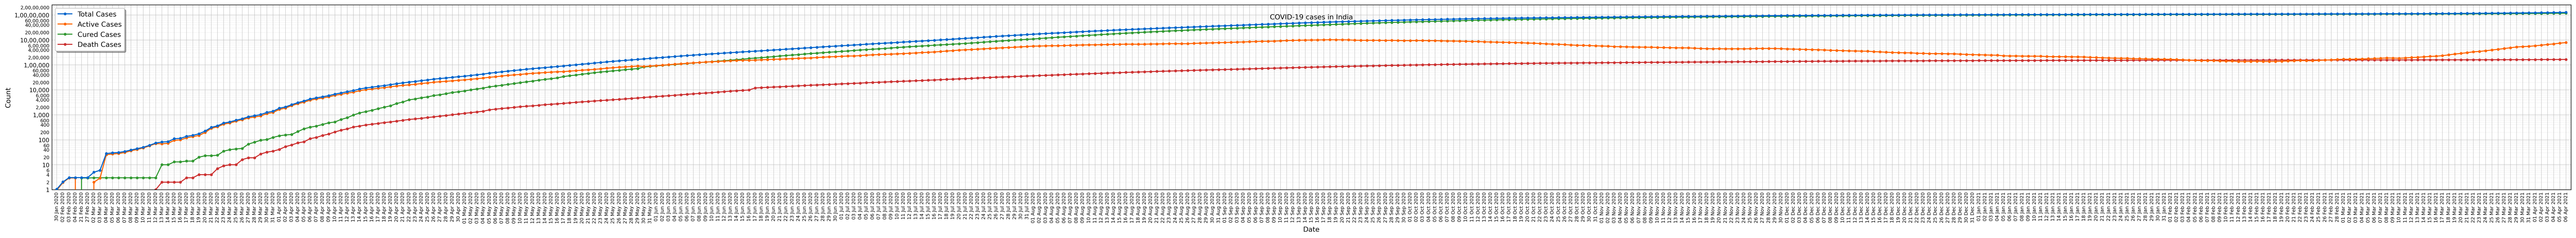 India COVID-19 total cases graph in log scale